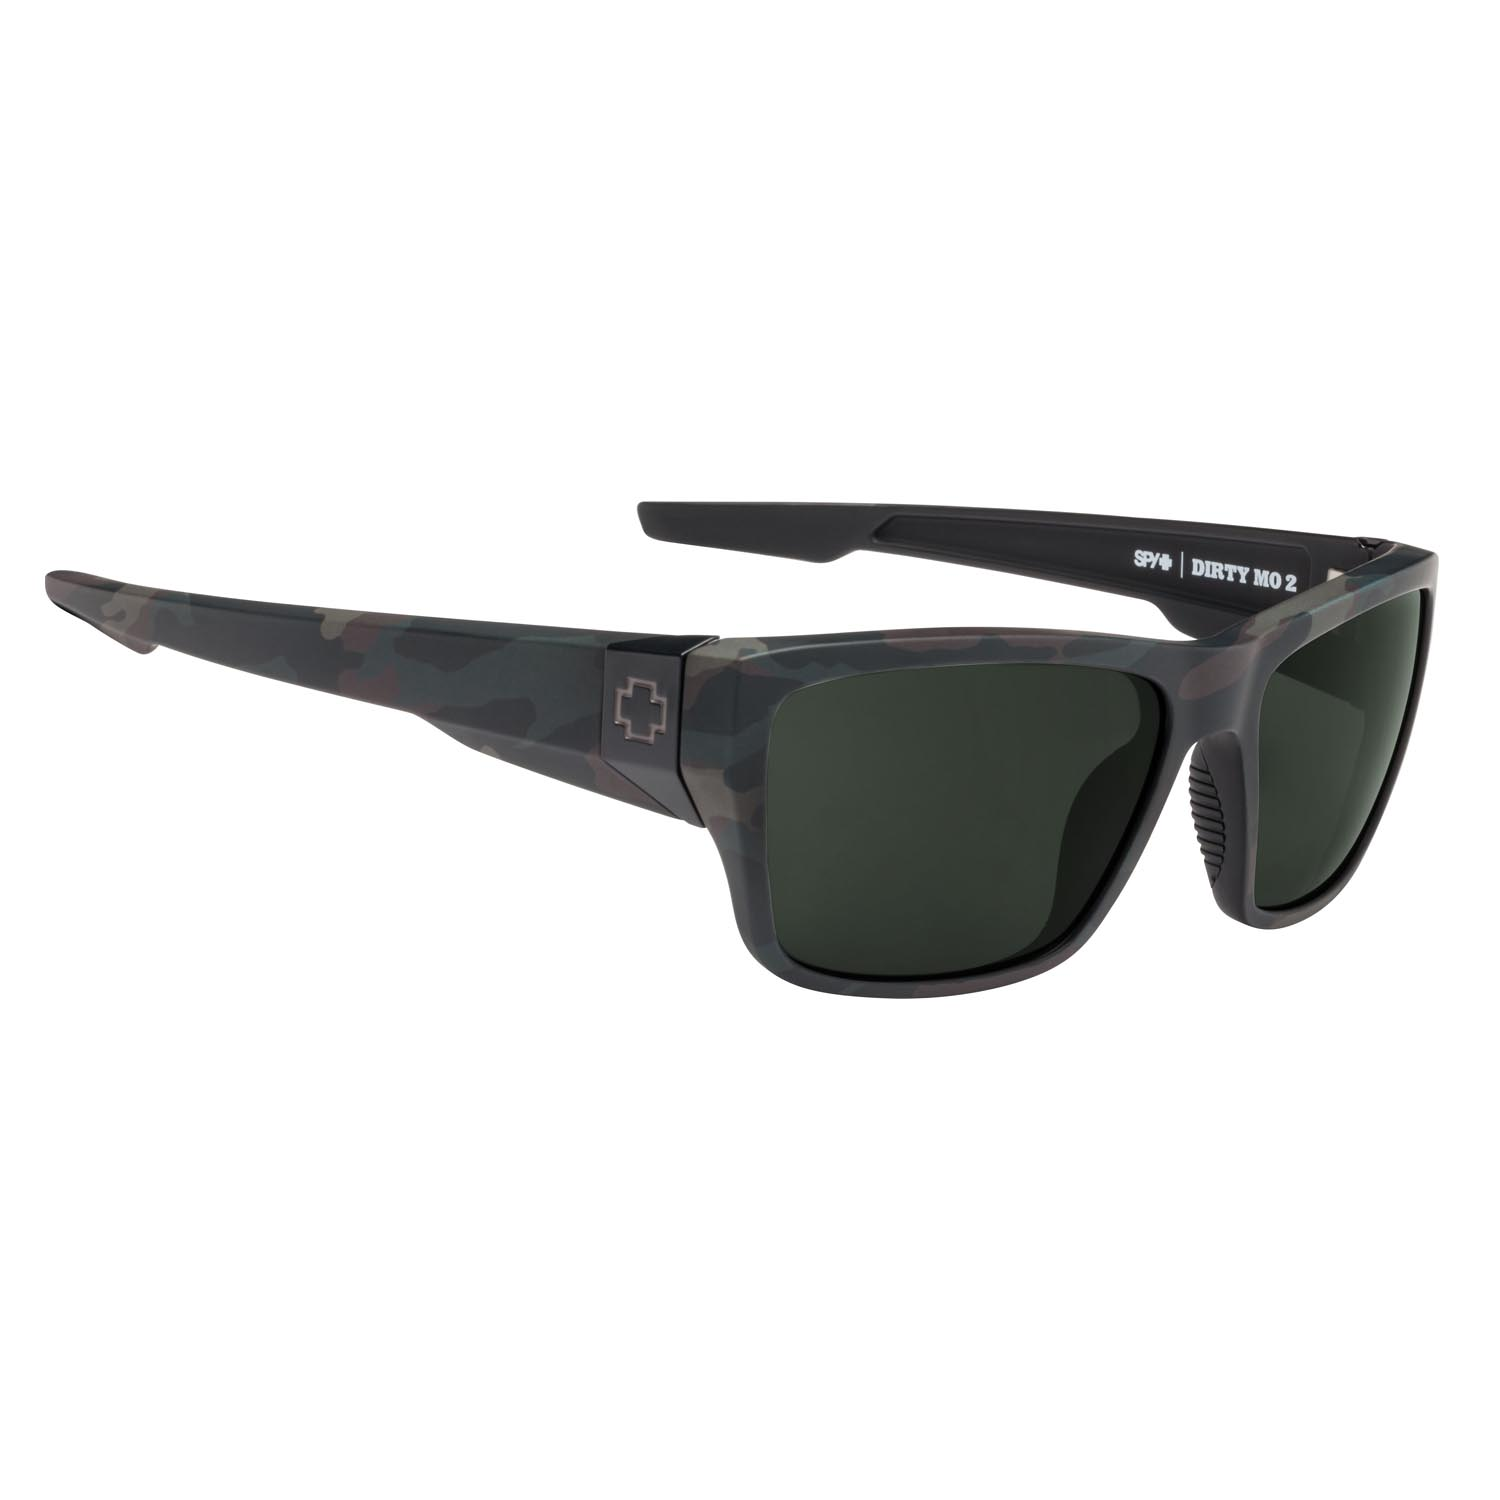 Spy Sunglasses Dirty Mo 2 in matte camo with gray polarized lenses